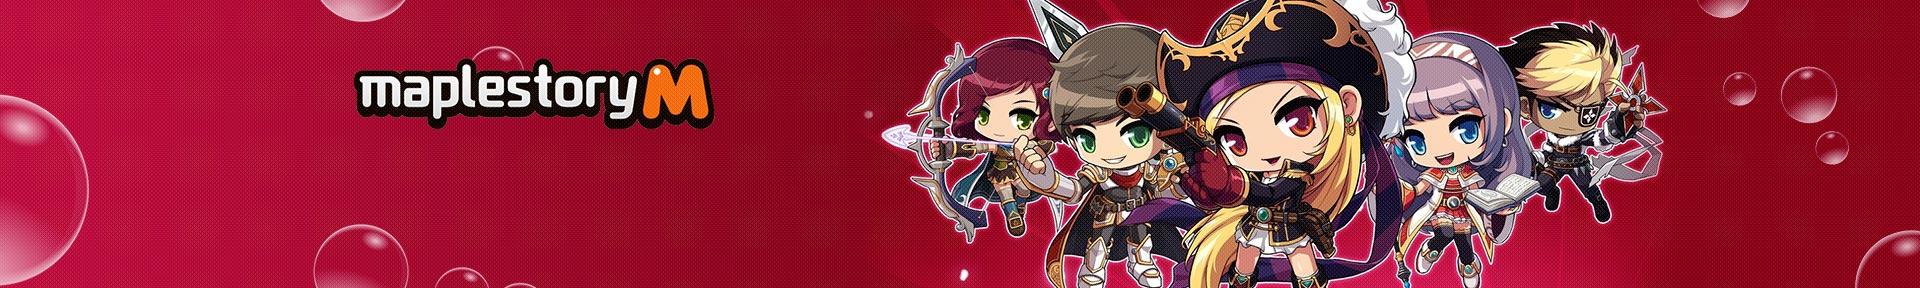 Maplestory M Trading | Buy MapleStory M Mesos, Cheap Maple Story M